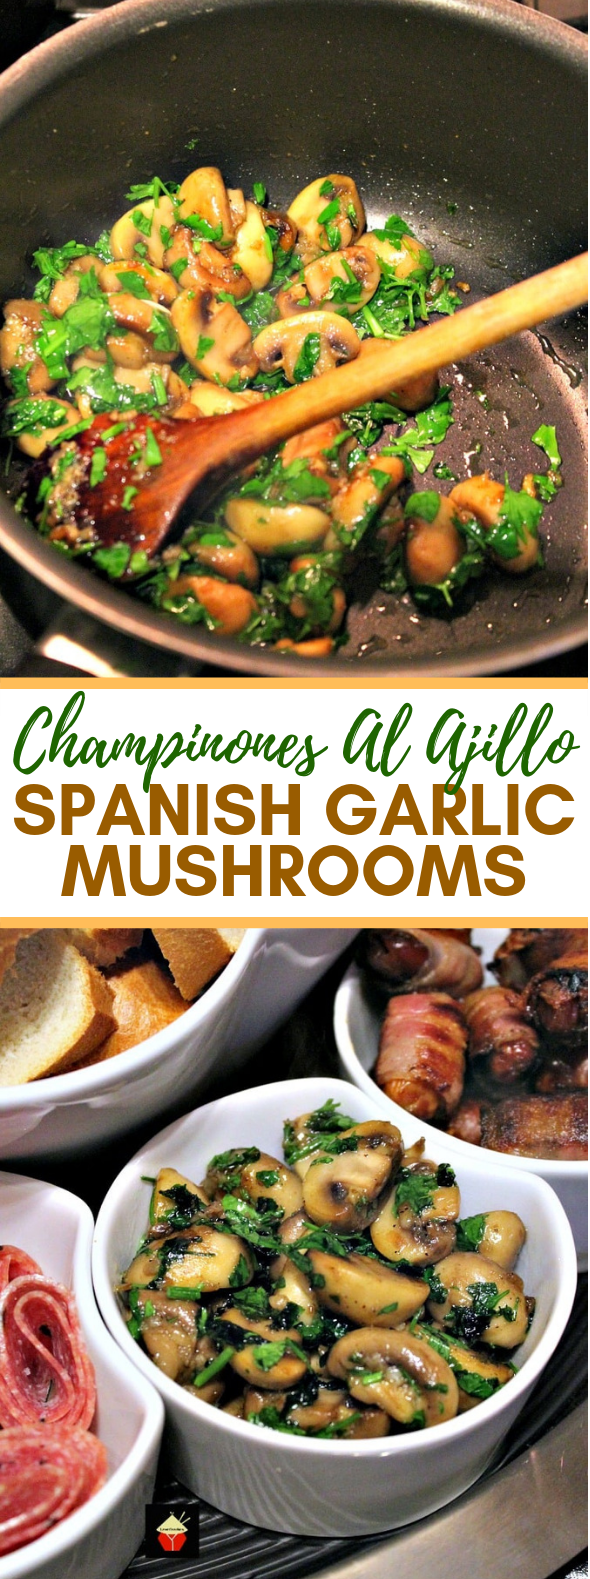 CHAMPINONES AL AJILLO, SPANISH GARLIC MUSHROOMS #dinner #partyfood